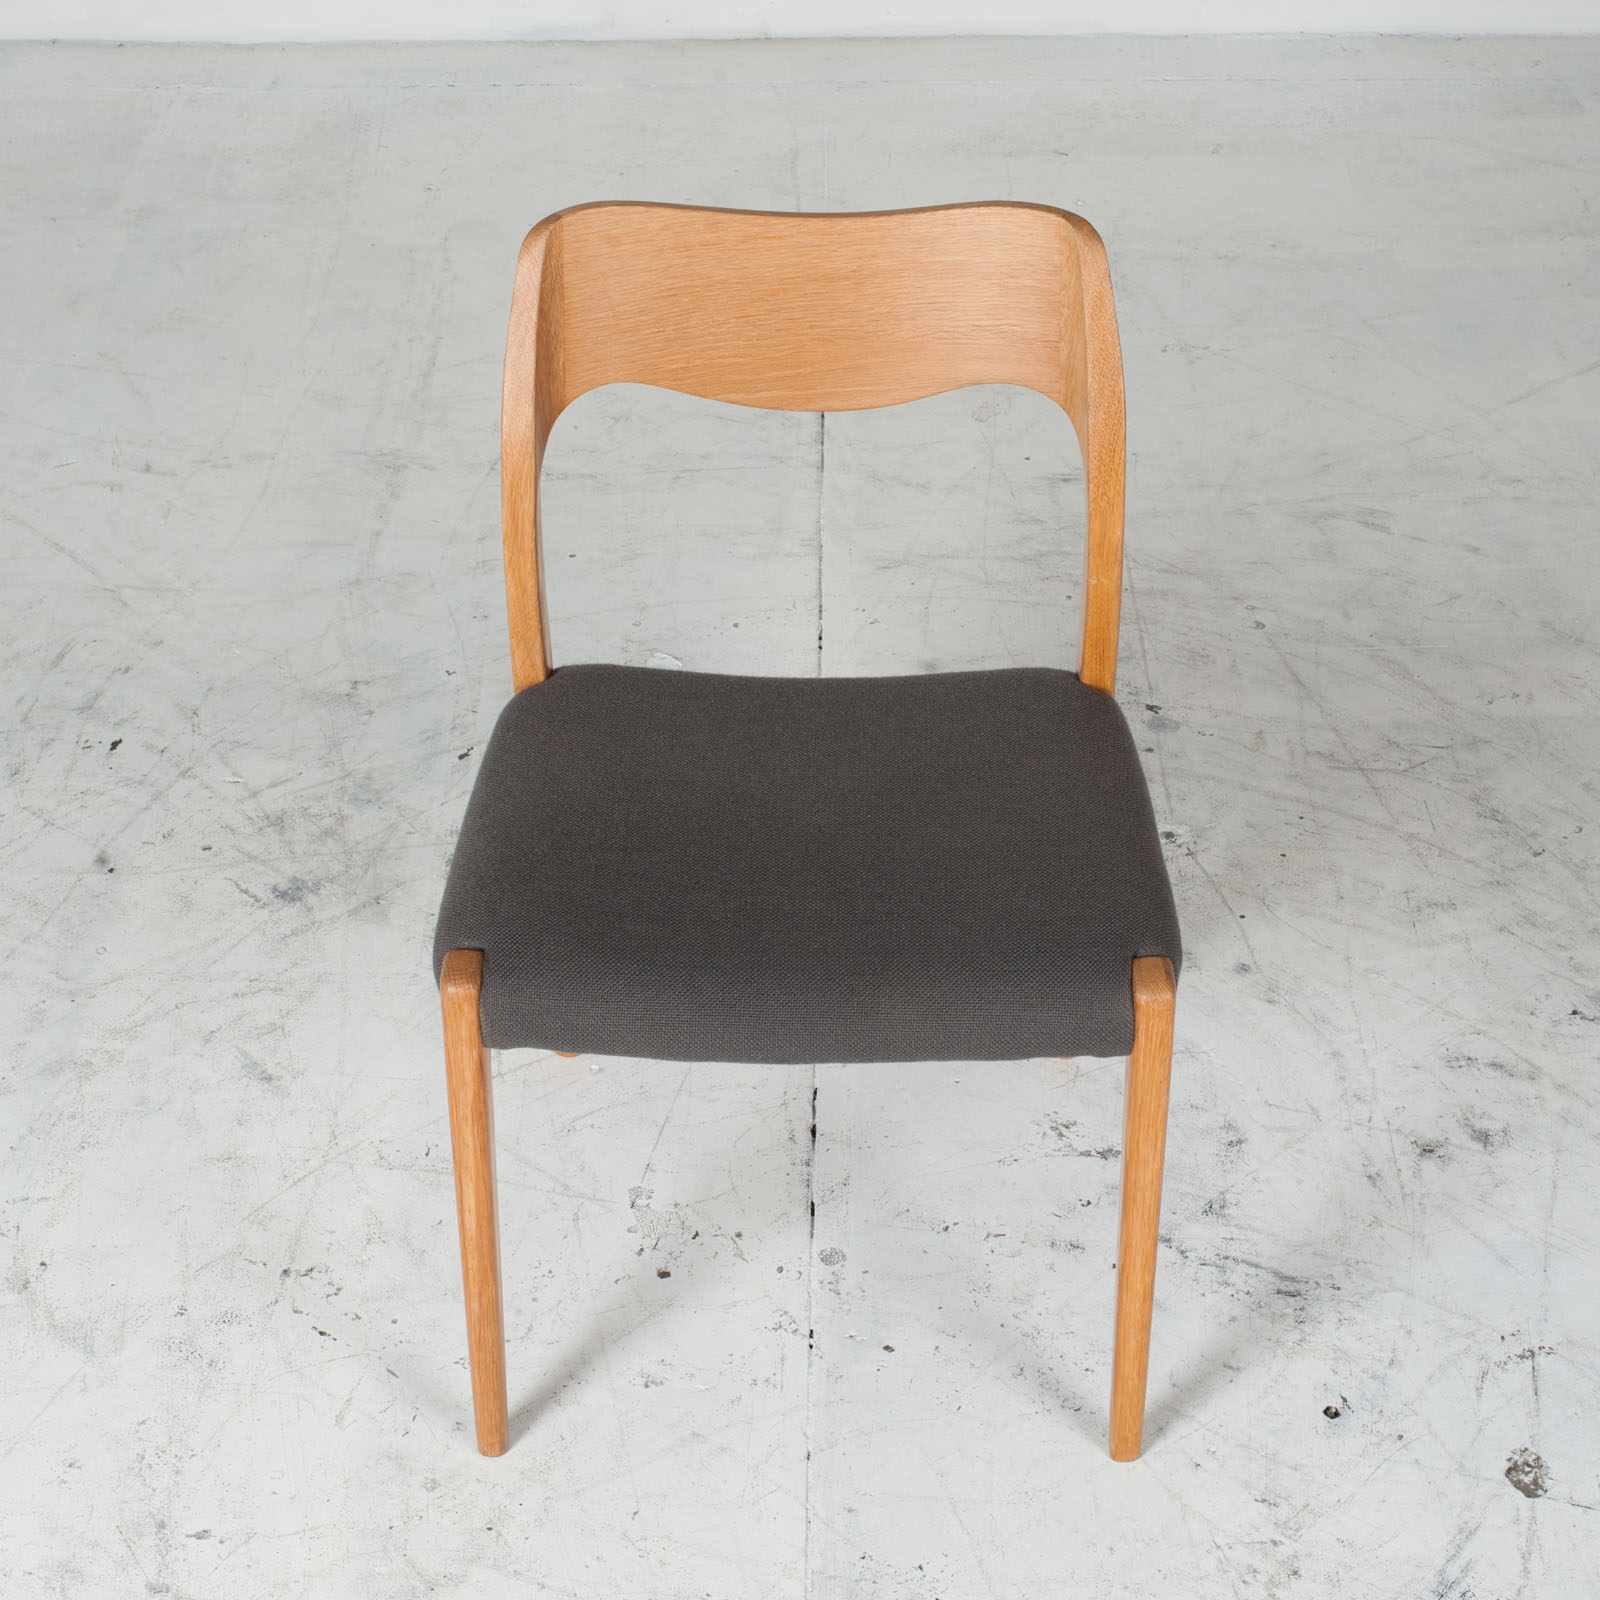 Set 4 Model 71 Dining Chairs By Niels Moller In Oak With Original Wool Upholstery 1960s Denmark 05